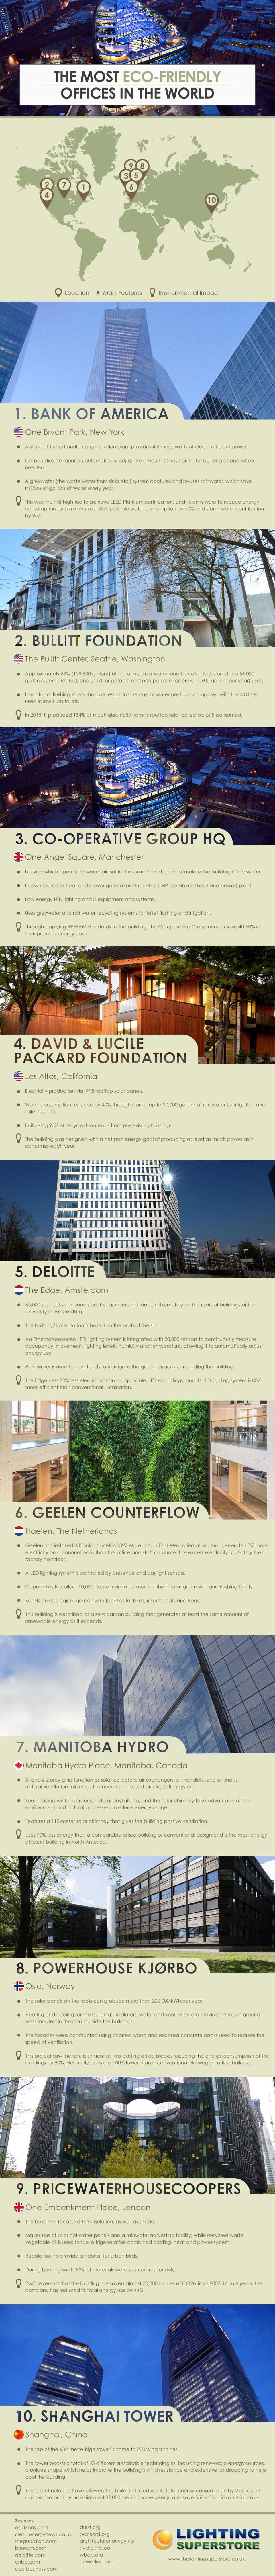 The Most Eco-Friendly Offices in the World